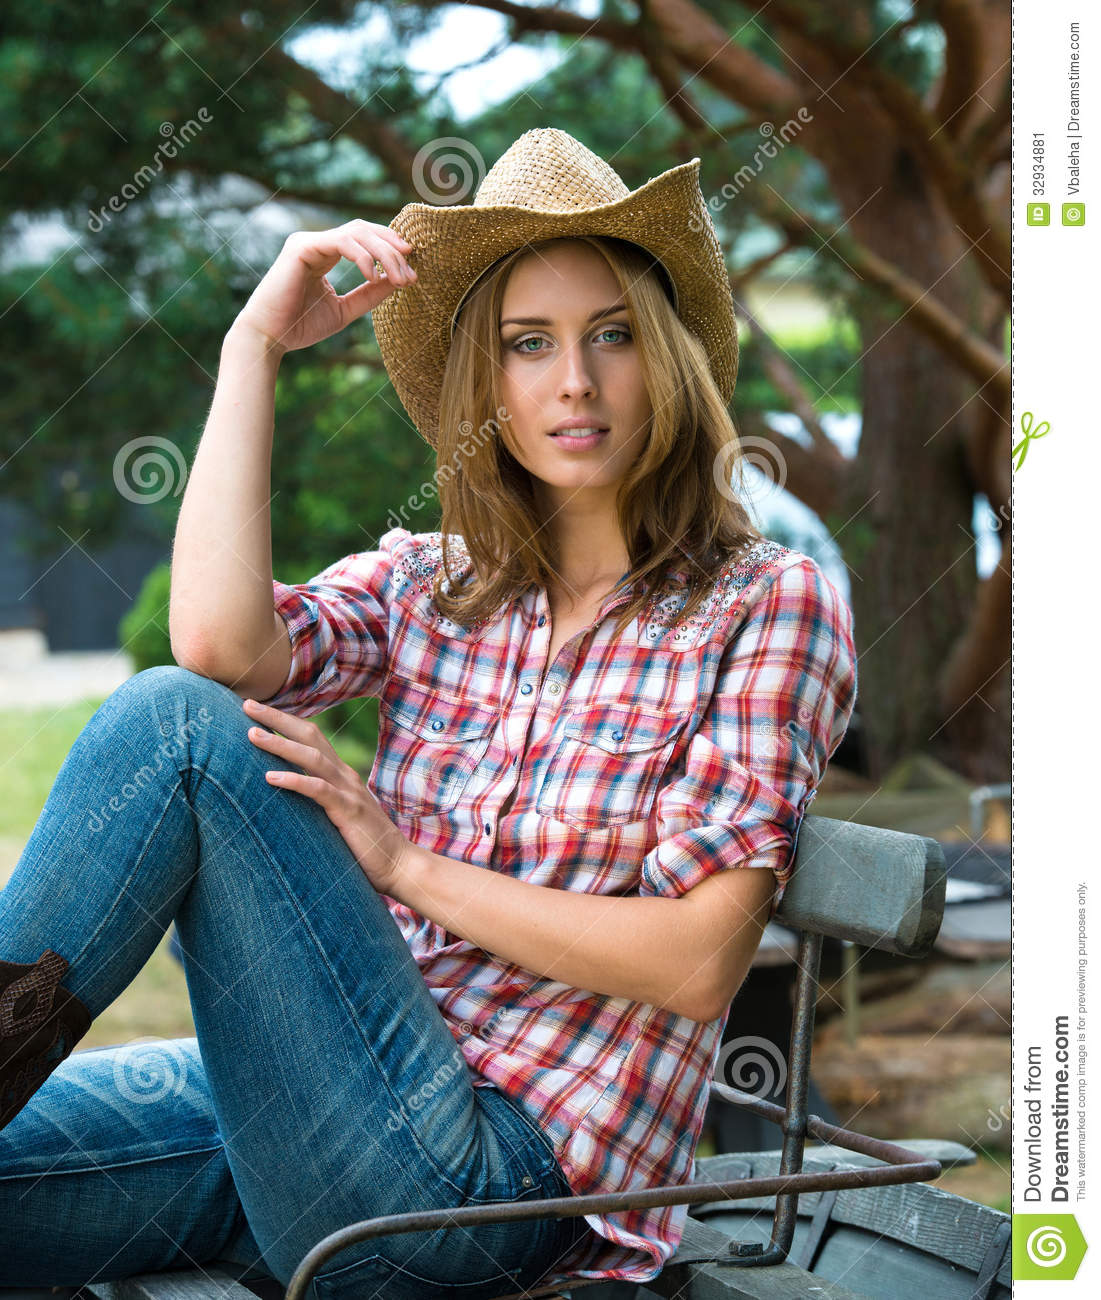 Image Cowgirl Young Of Cute - Image Hat Cheerful Stock 32934881 In